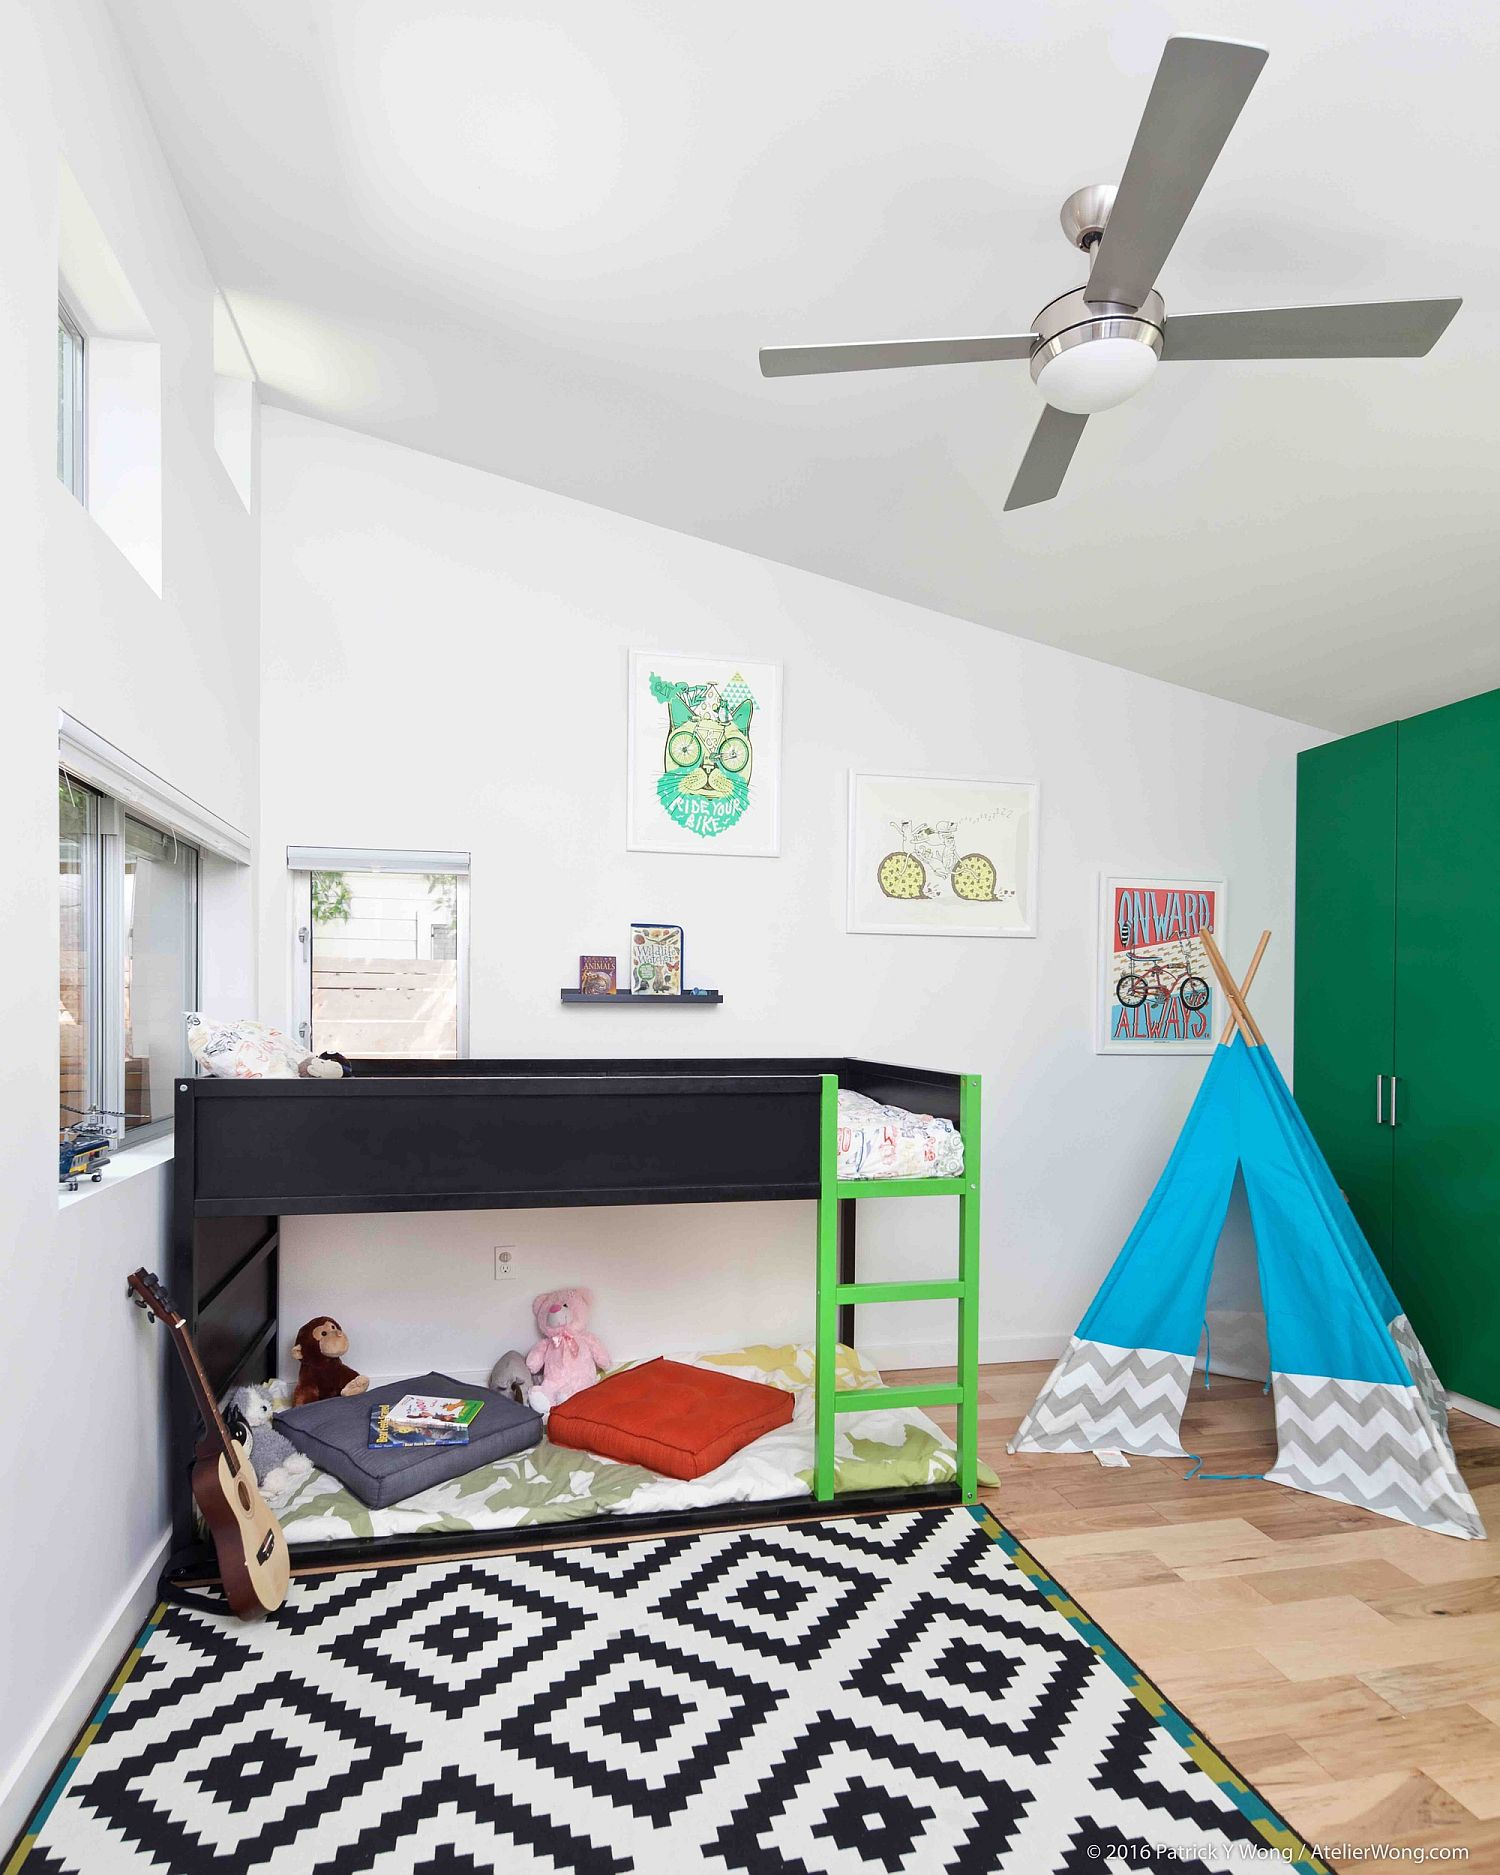 Kids' bedroom with modern bunk bed, snazzy rug and a teepee in the corner